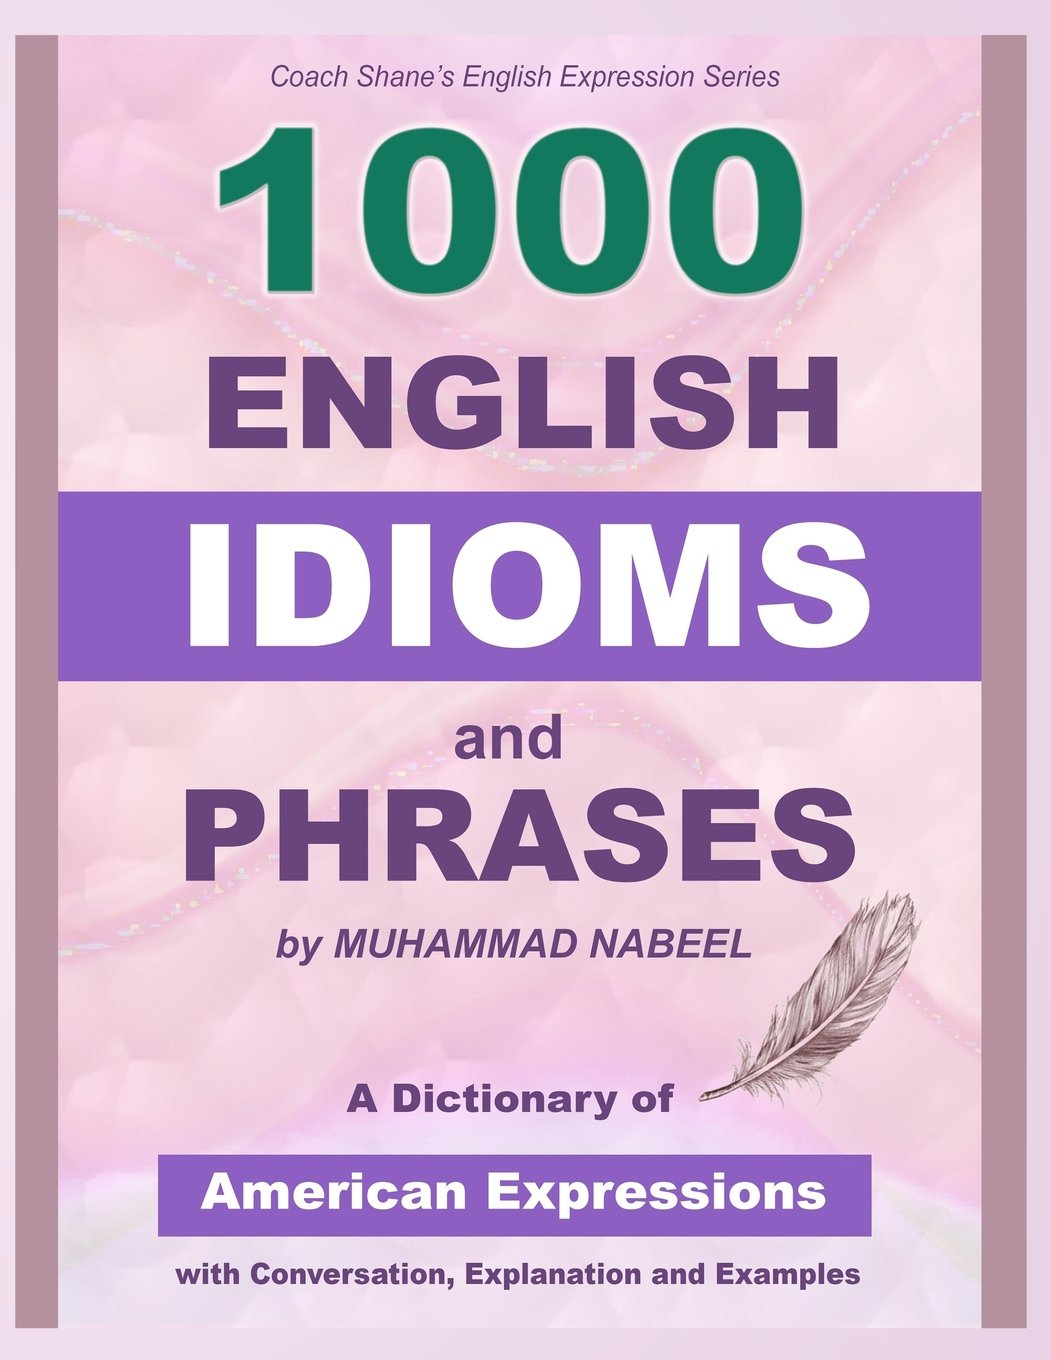 Amazon.com: 1000 English Idioms and Phrases: American Idioms dictionary  with conversation, explanation and examples (coach shane's english  expression) ...